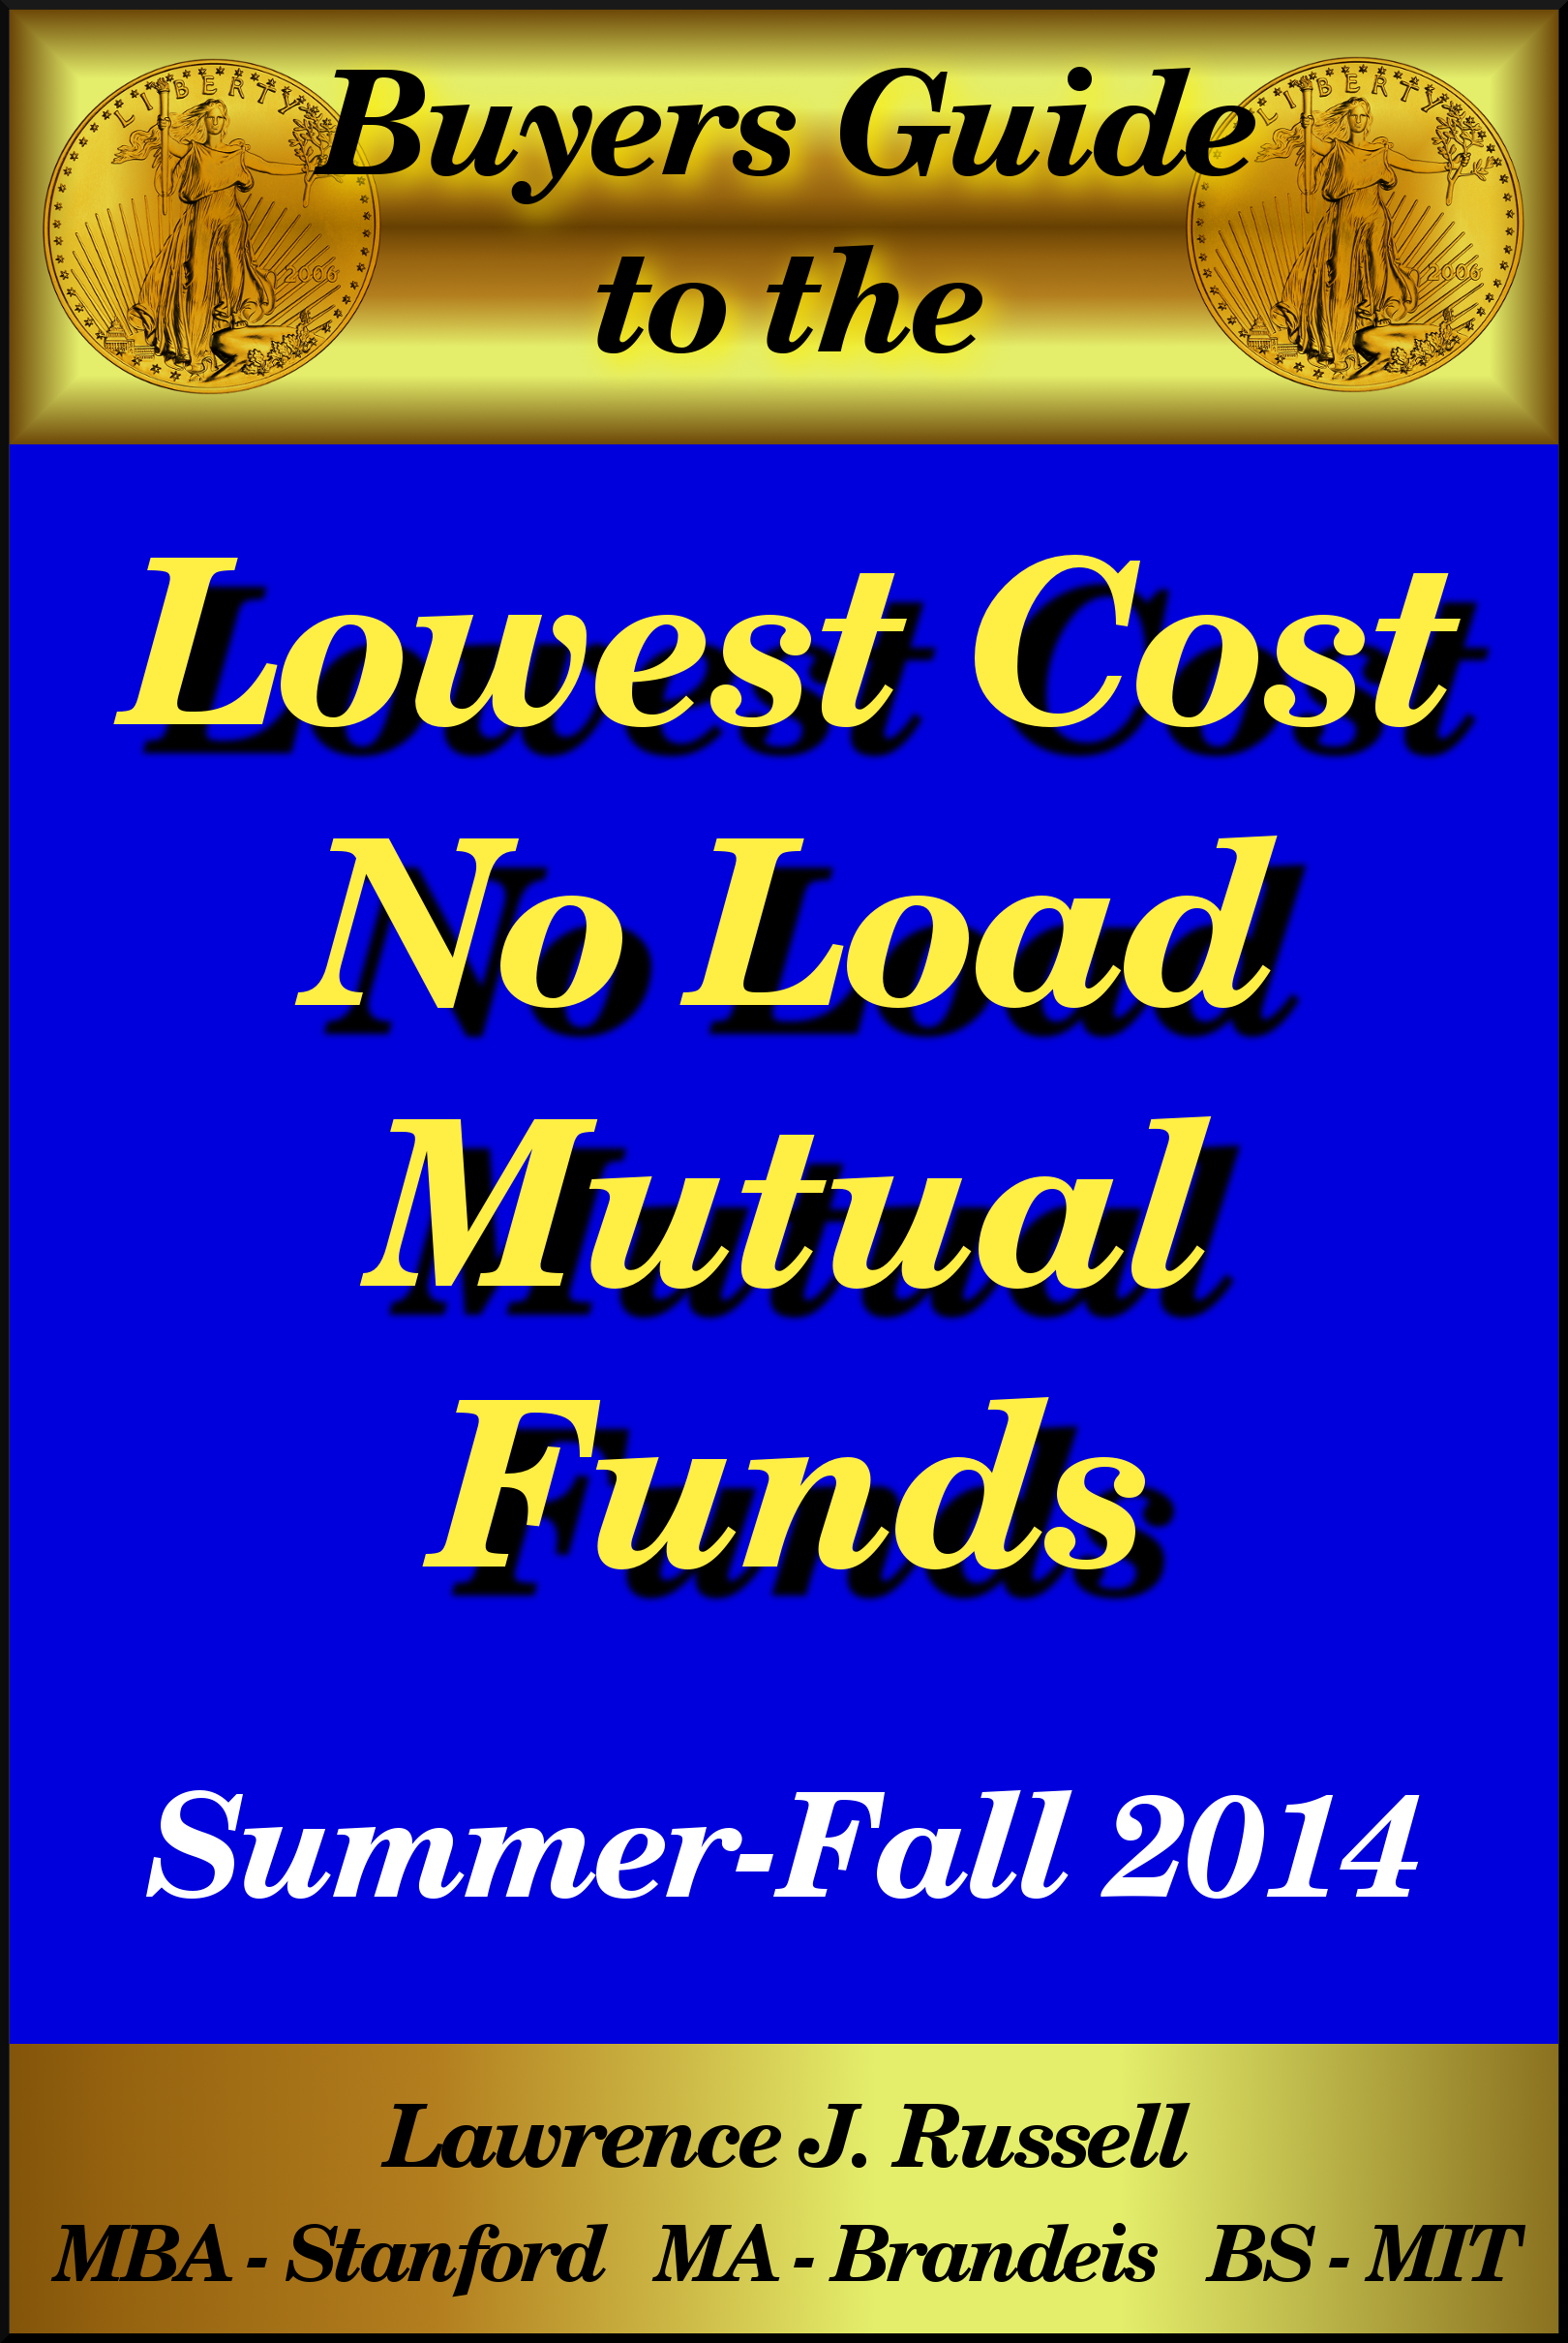 Lawrence Russell - Buyer's Guide to the Lowest Cost No Load Mutual Funds